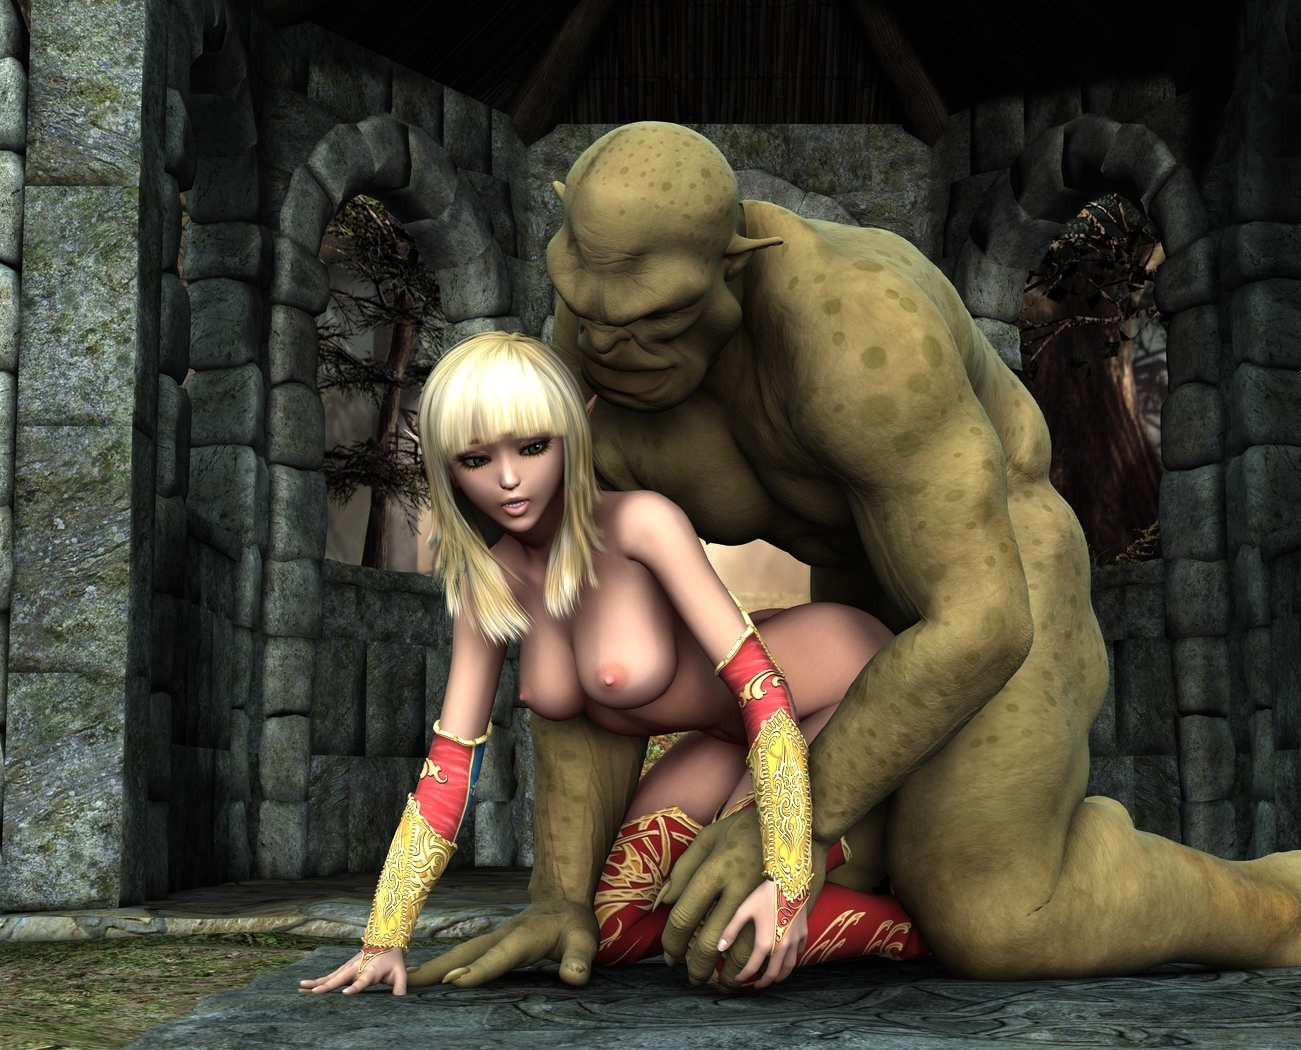 Ogre sex with elf nsfw scenes